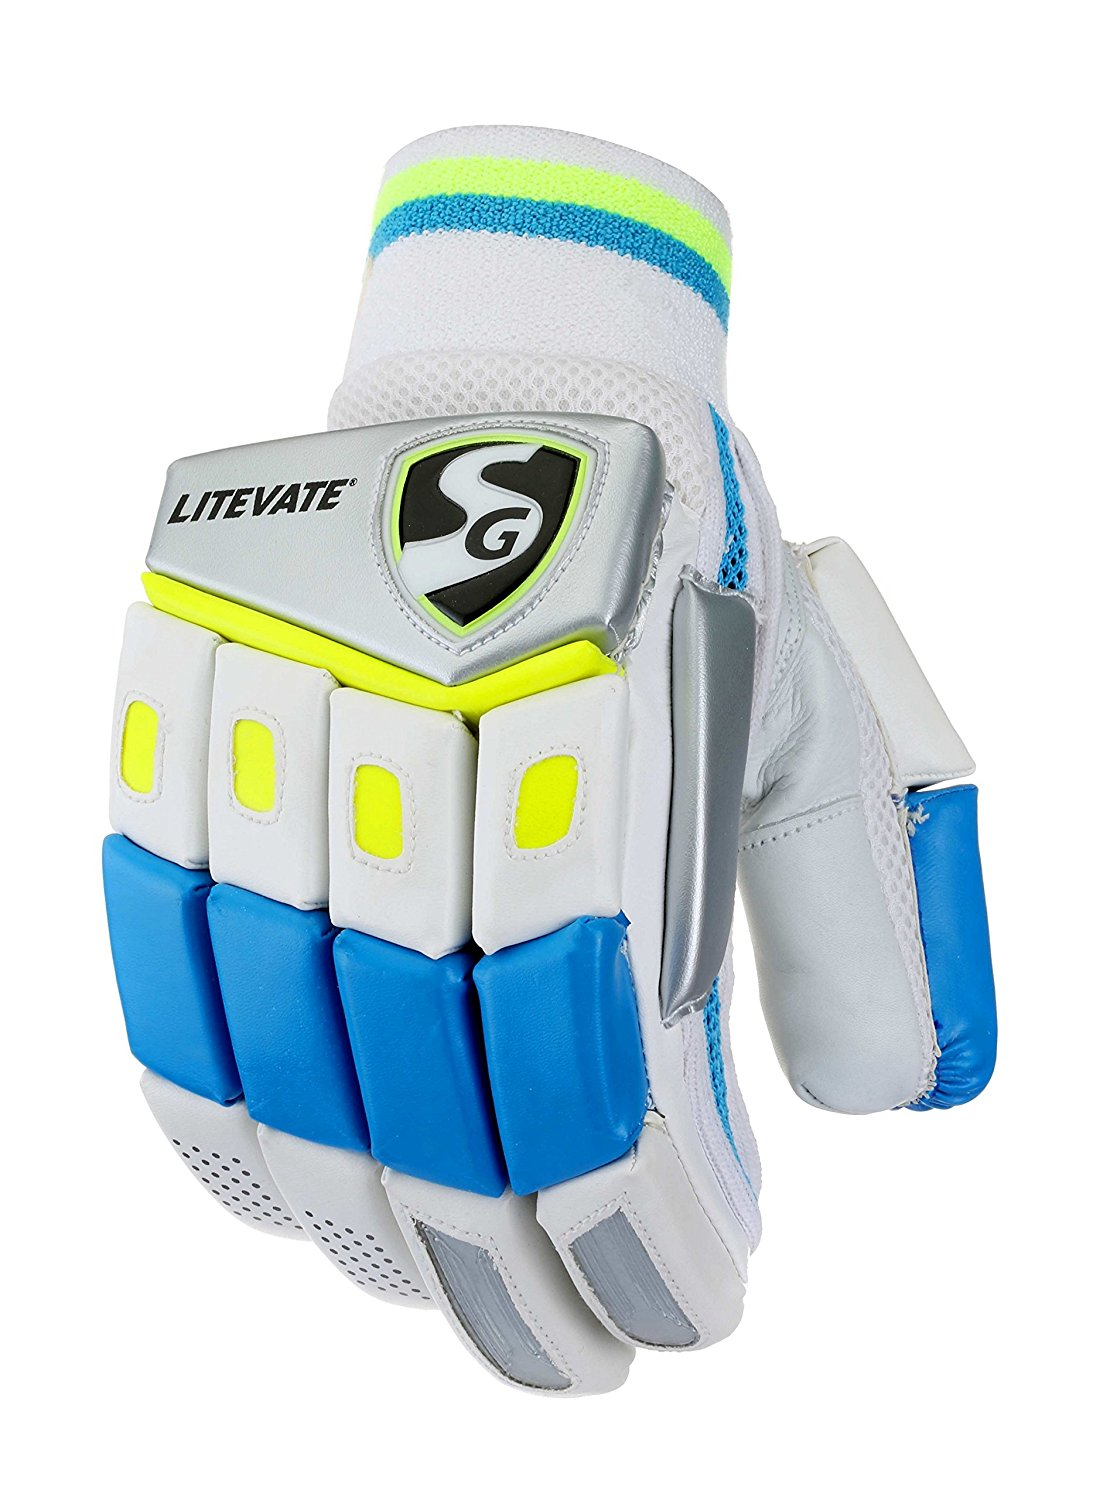 9fc9e9ff8ec Buy Online Products at Sports Gallery